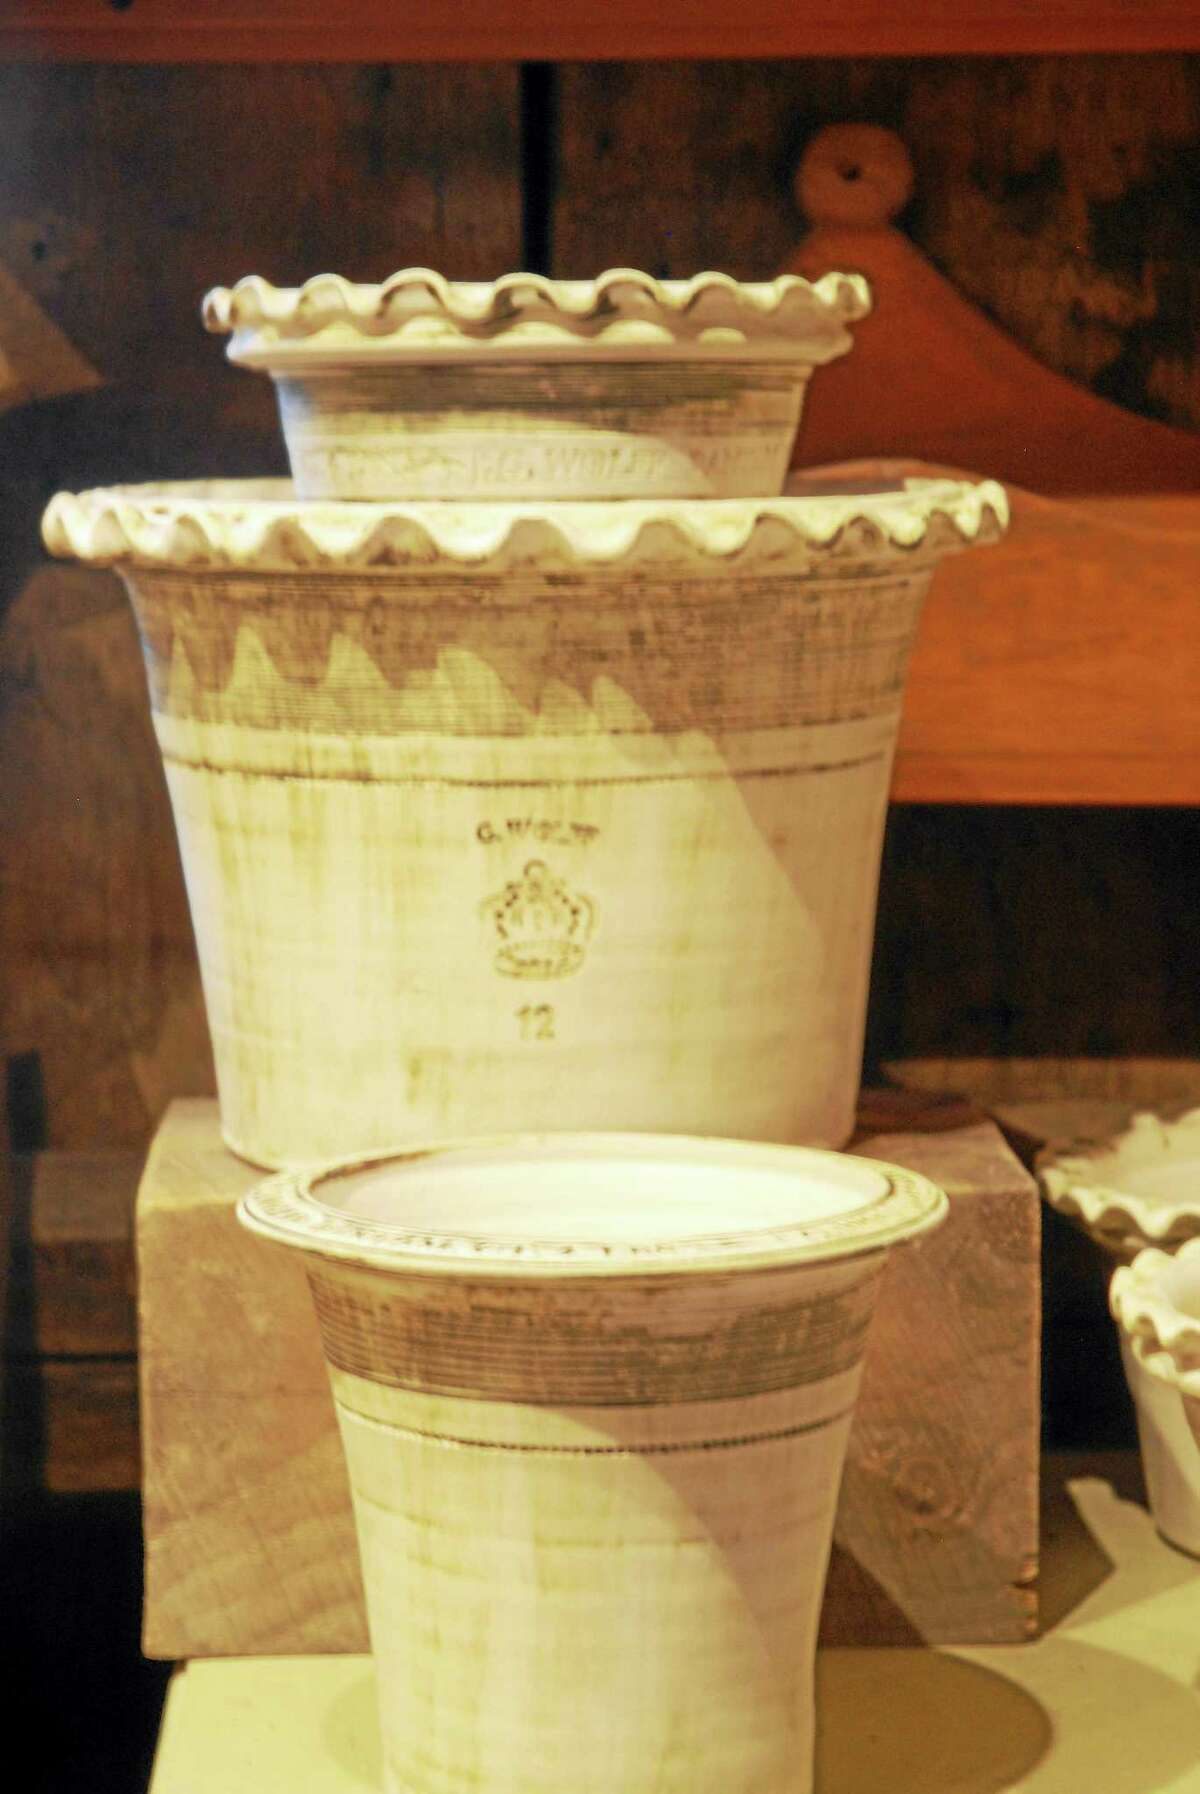 Traditionally, potters stamped their name into their work.